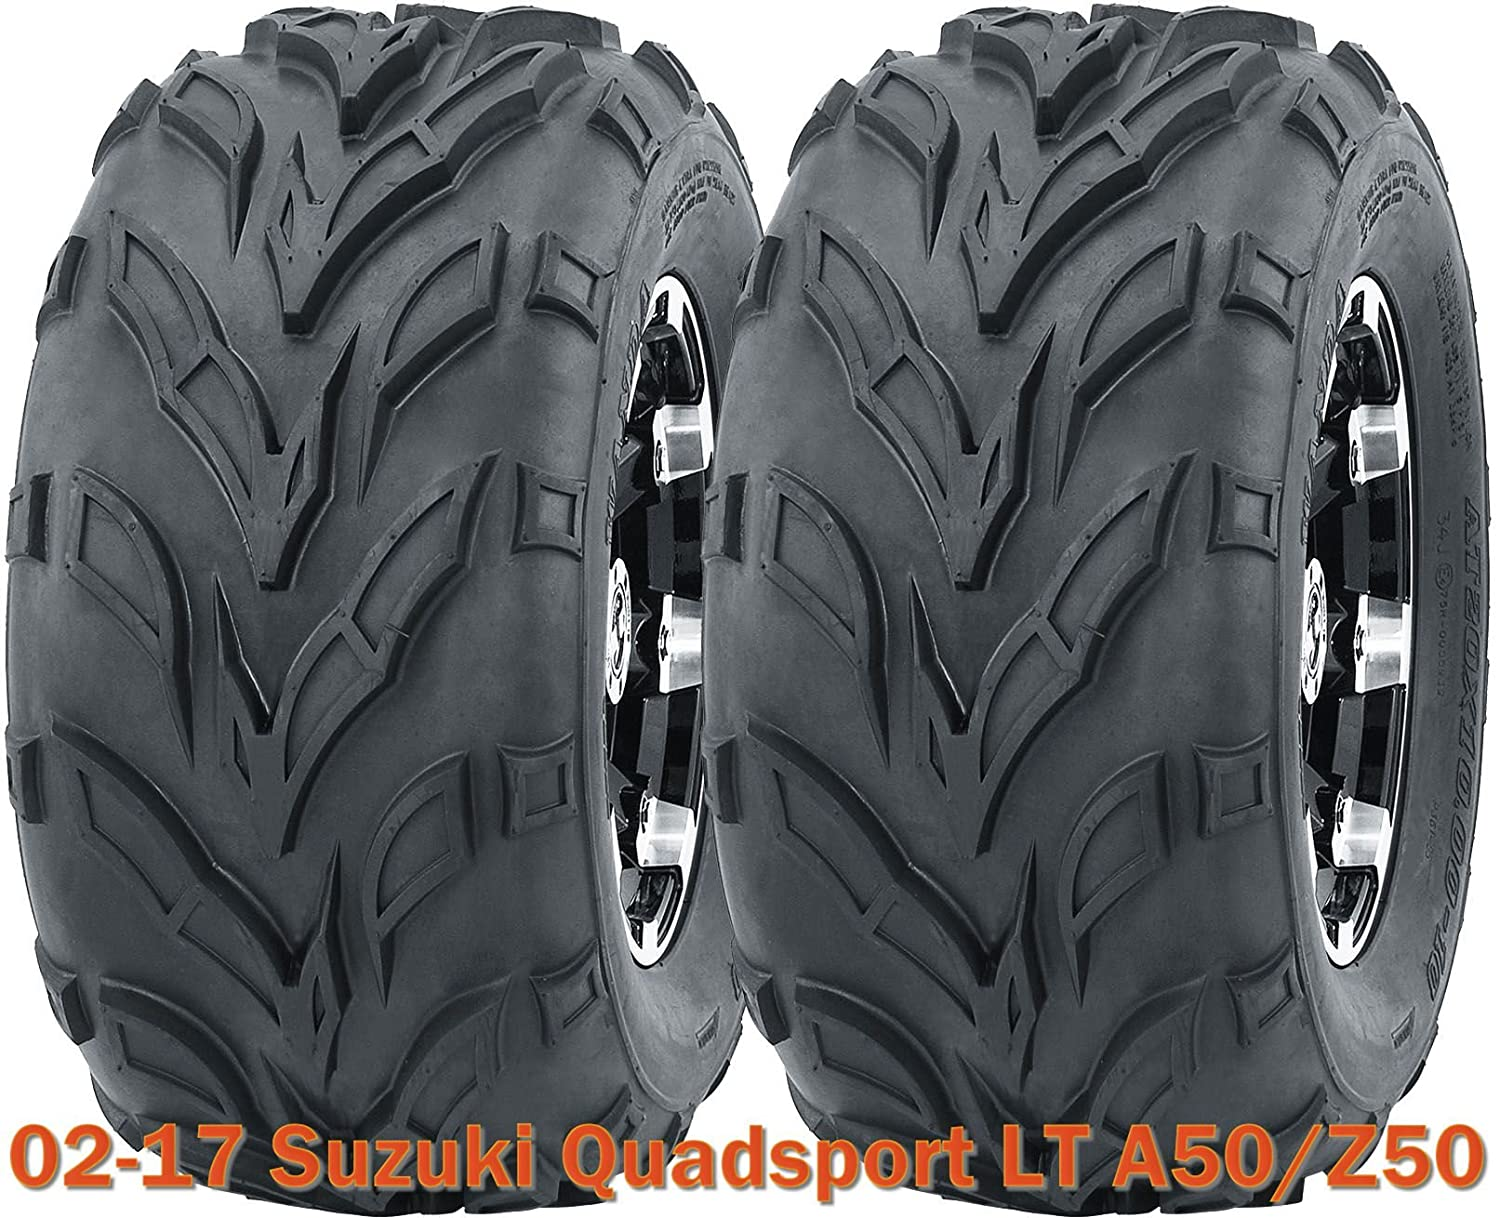 (2) 16x8-7 WANDA ATV tires set for 2002-2017 Suzuki Quadsport LT A50/Z50